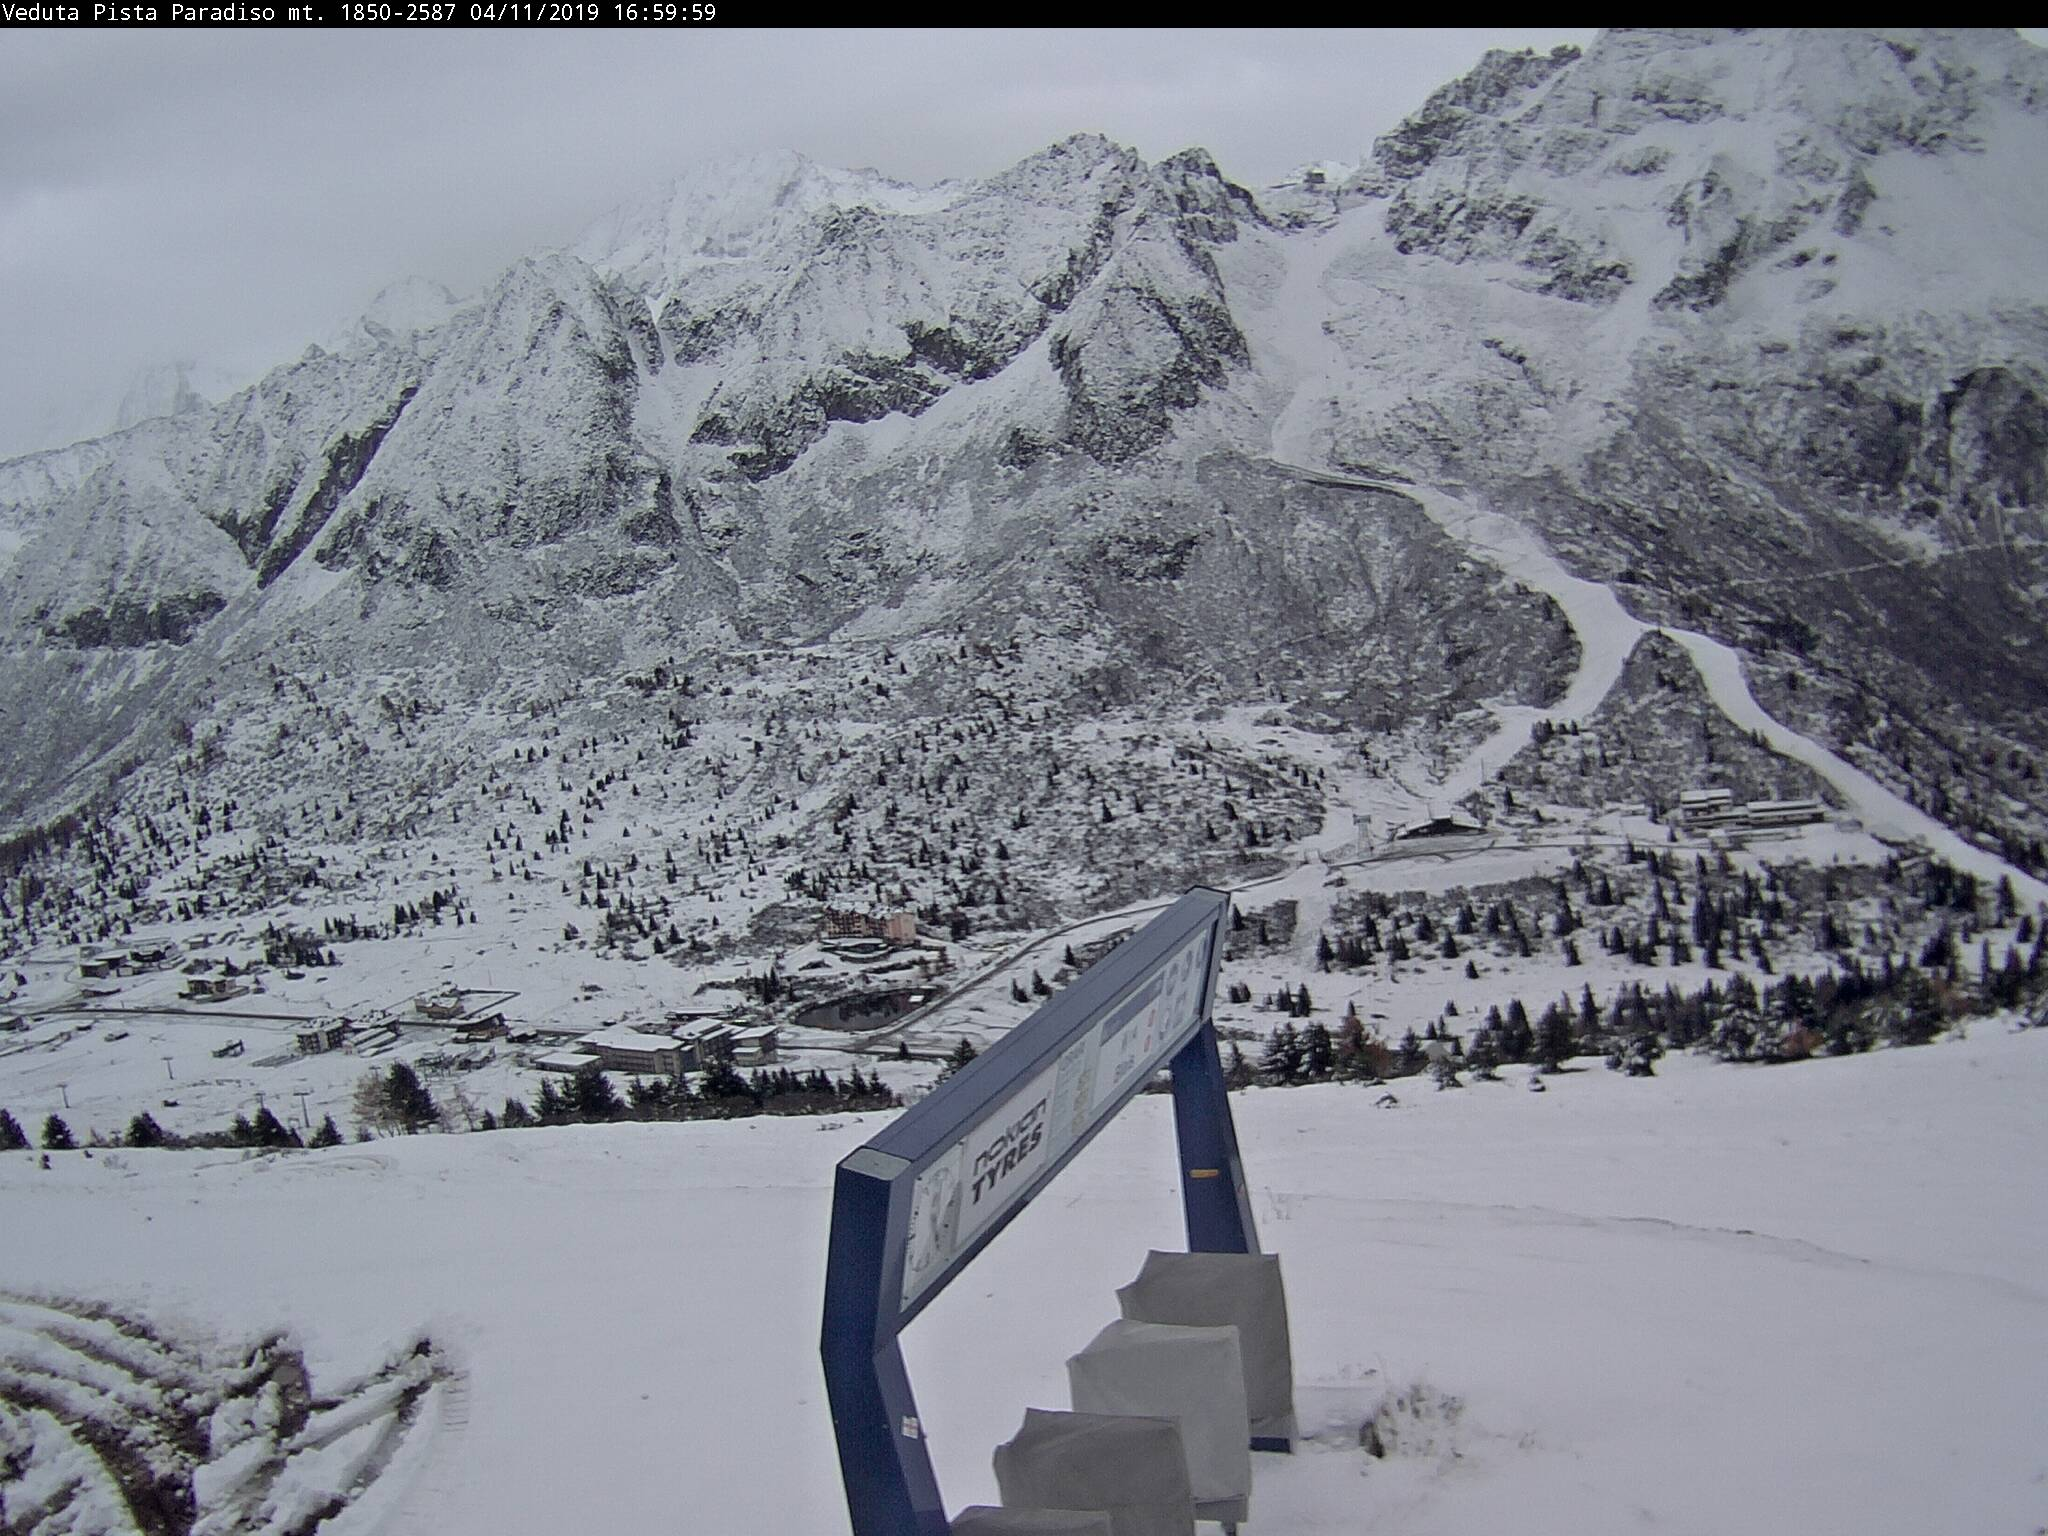 Webcam Skirama Dolomiti Adamello Brenta